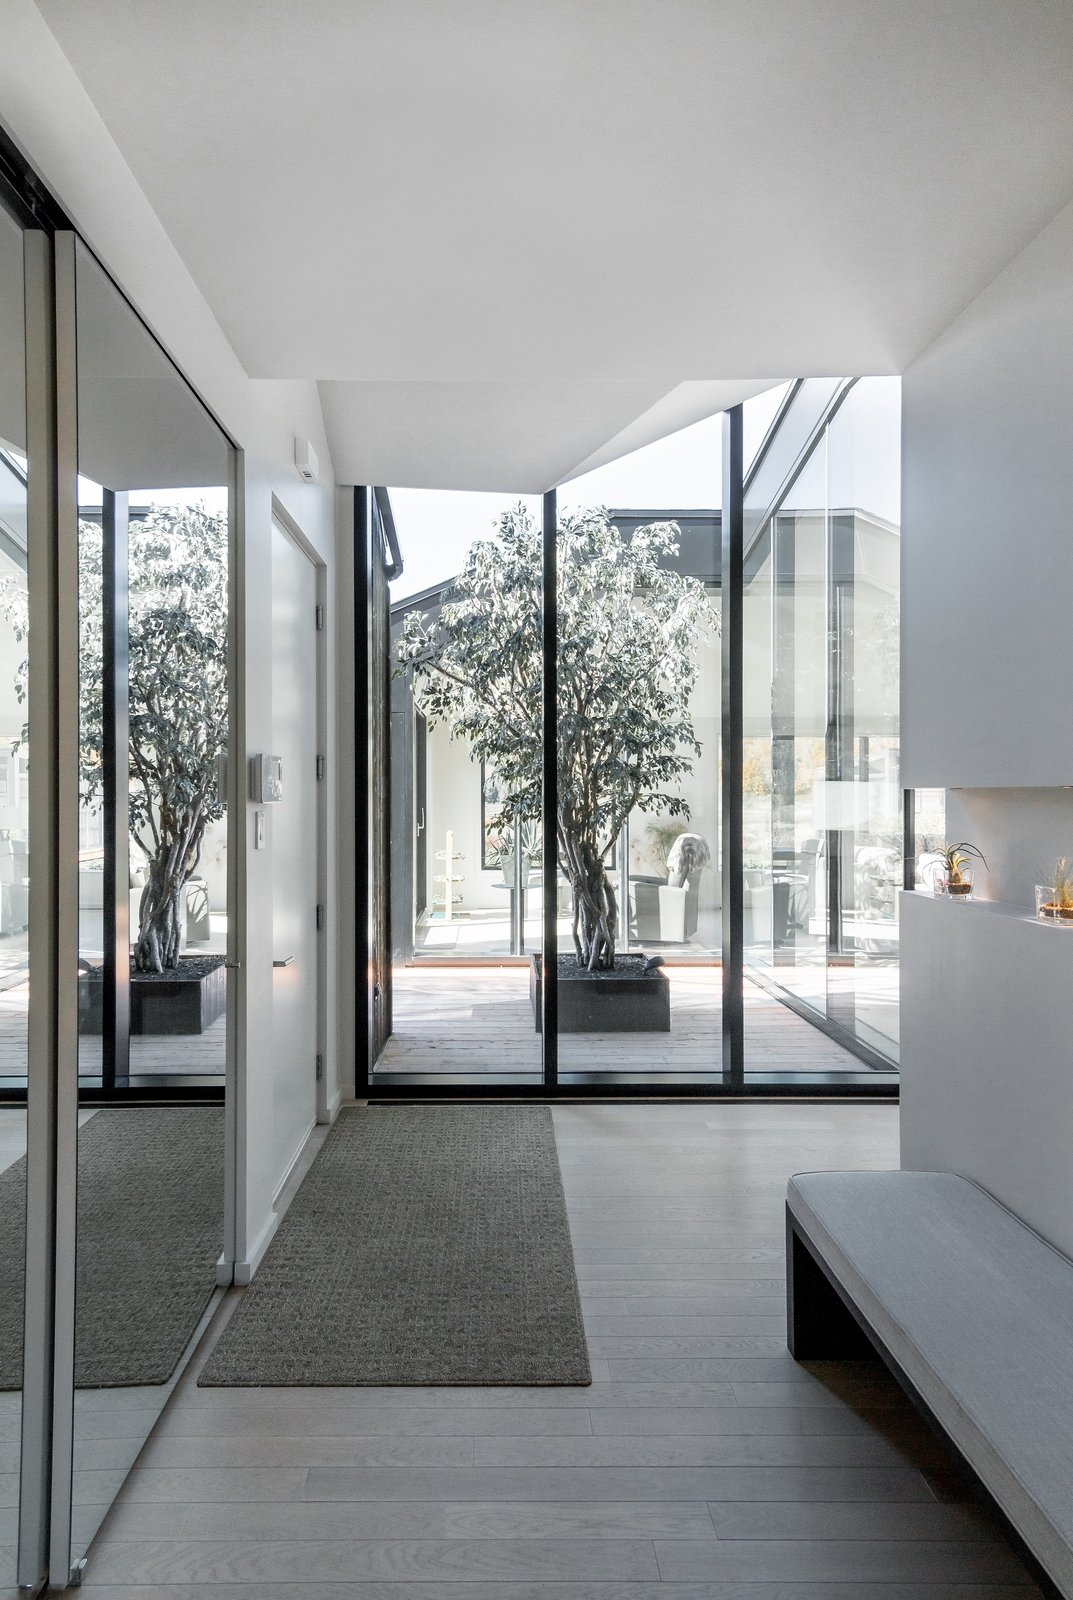 Vallée du Parc Residence interior with floor-to-ceiling windows